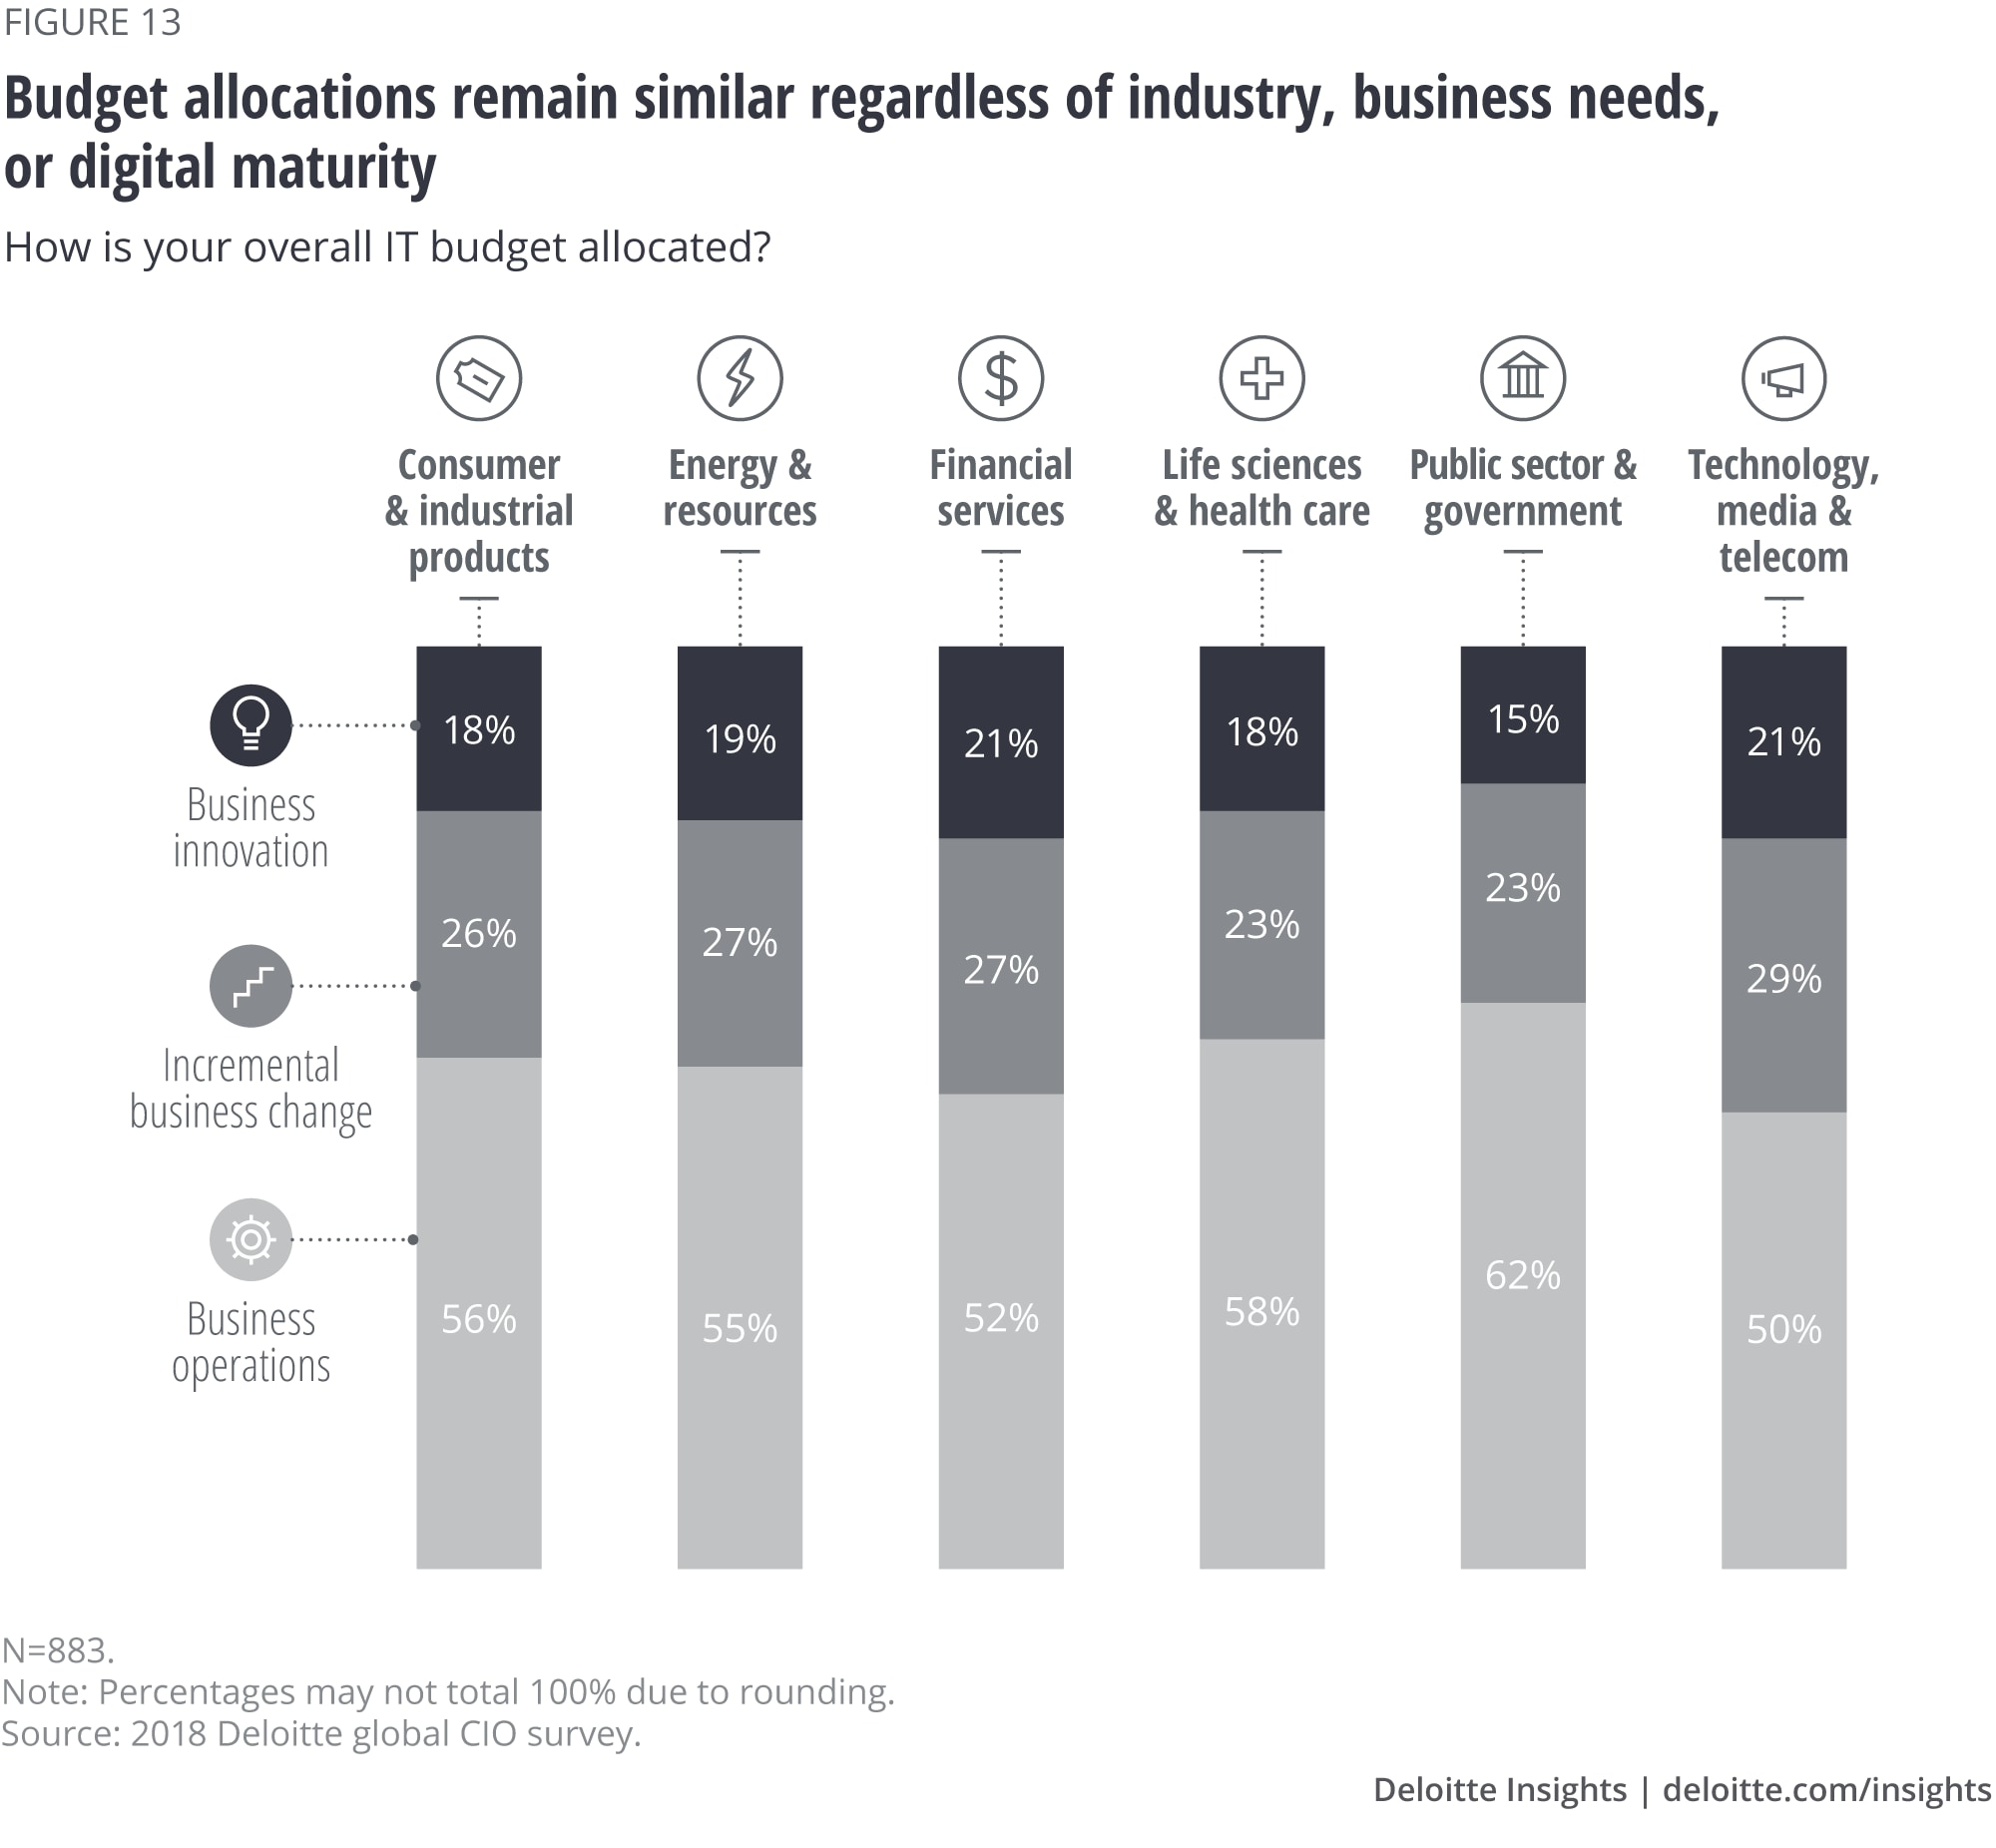 Budget allocations remain similar regardless of industry, business needs, or digital maturity